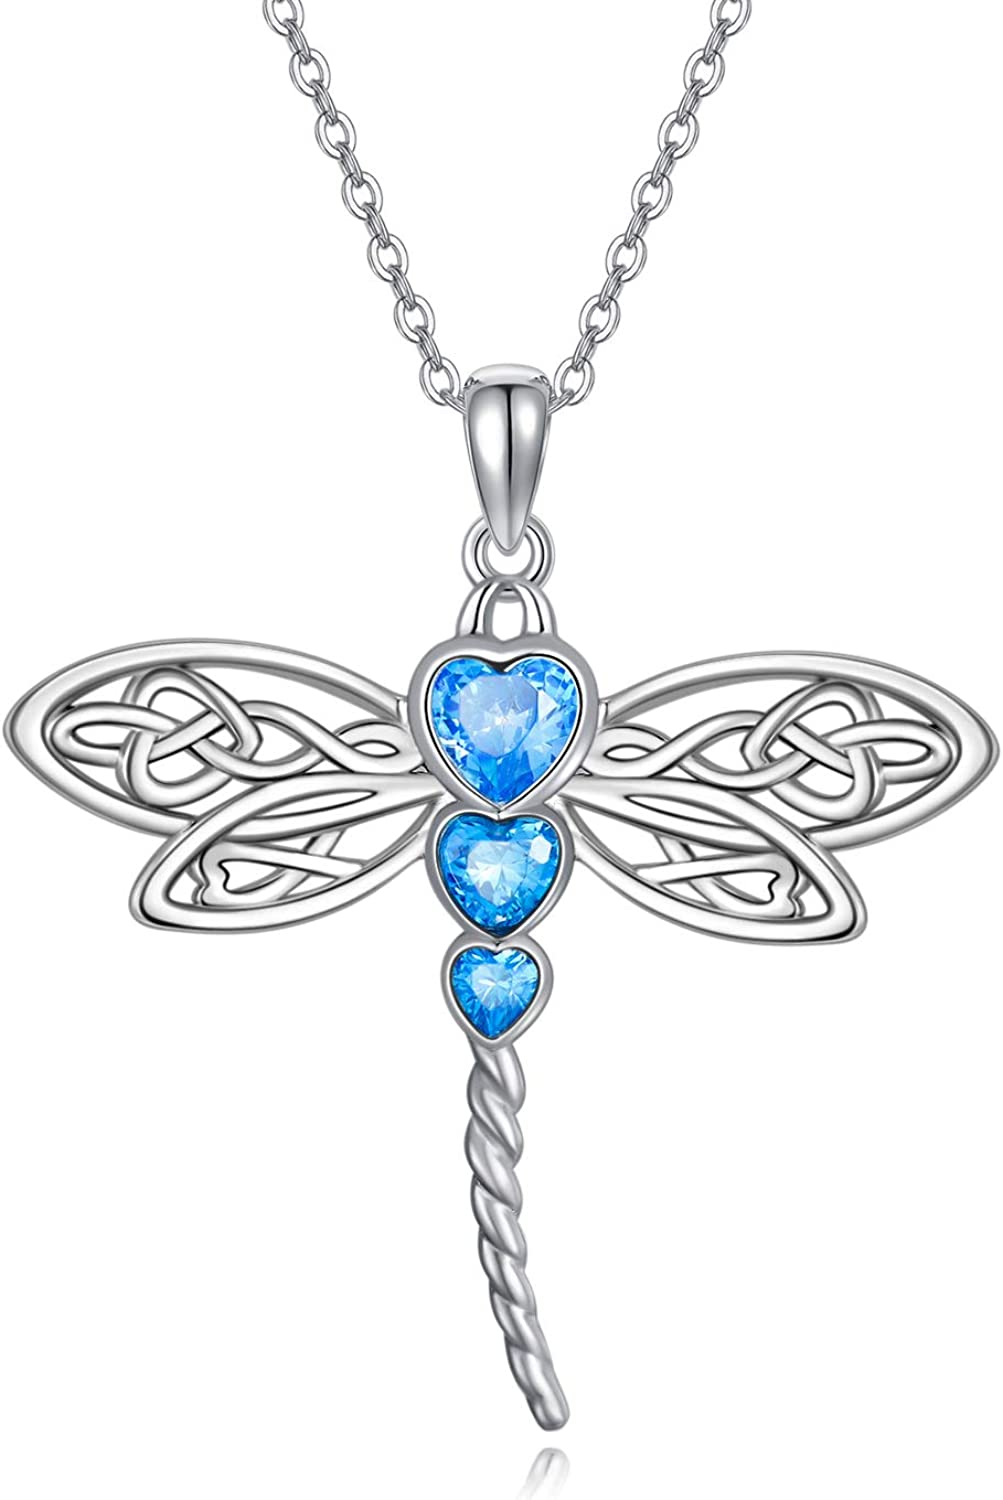 Max 66% OFF RMREWY Dragonfly Necklace 925 2021new shipping free shipping Celtic N Sterling Silver